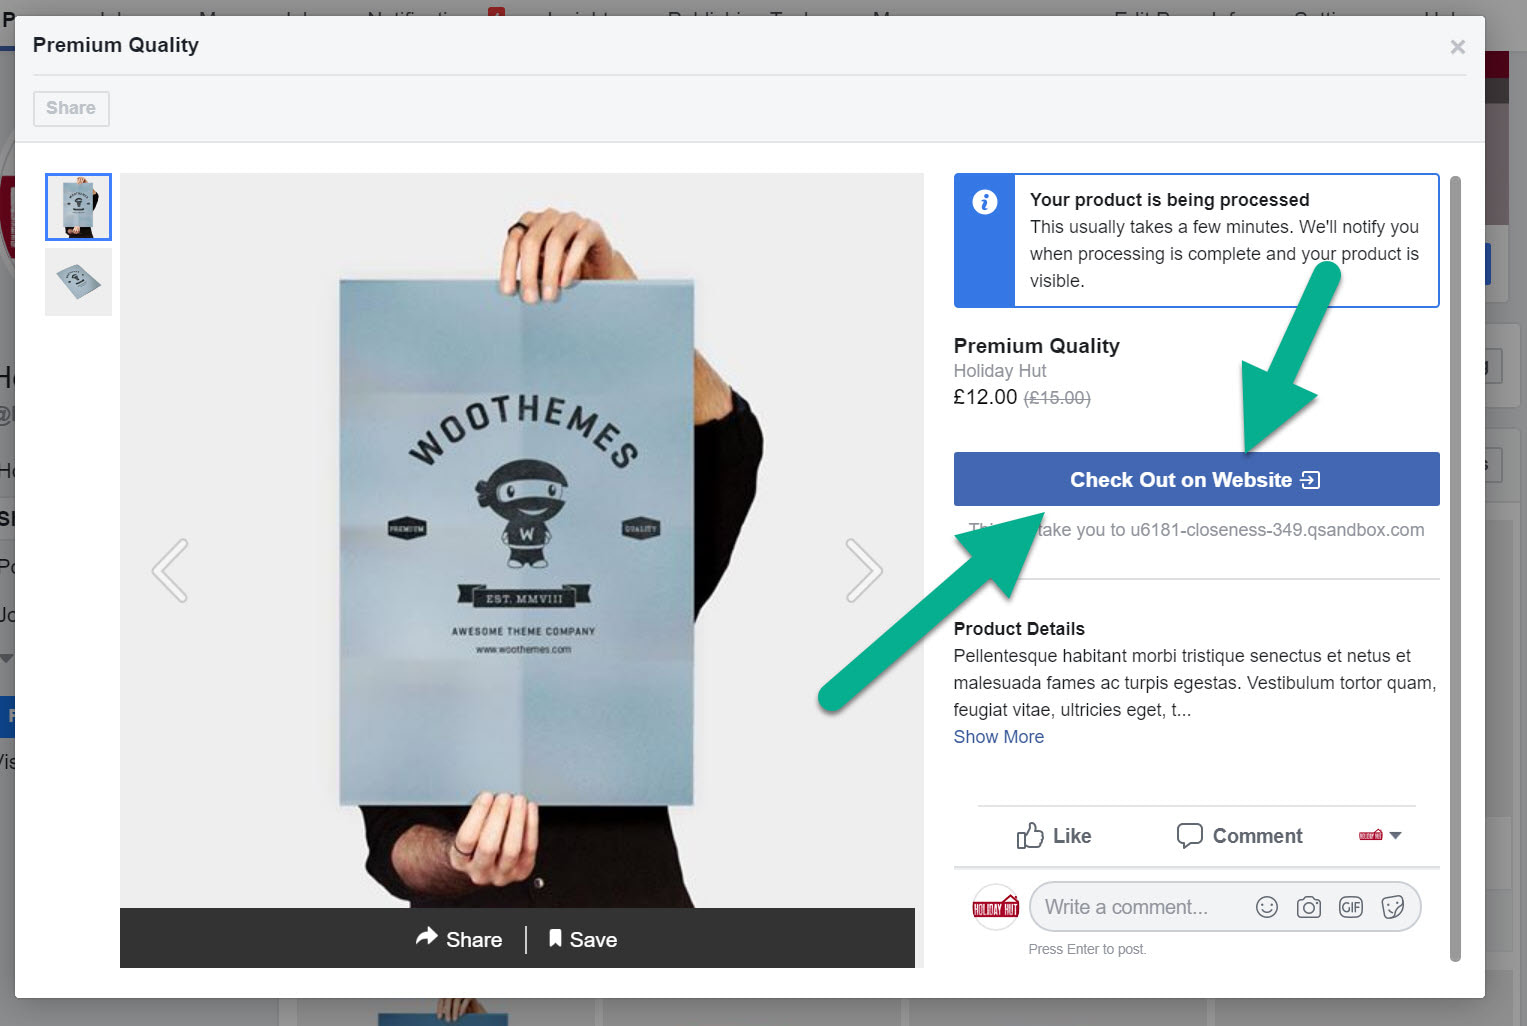 How to sell on Facebook: check out on website